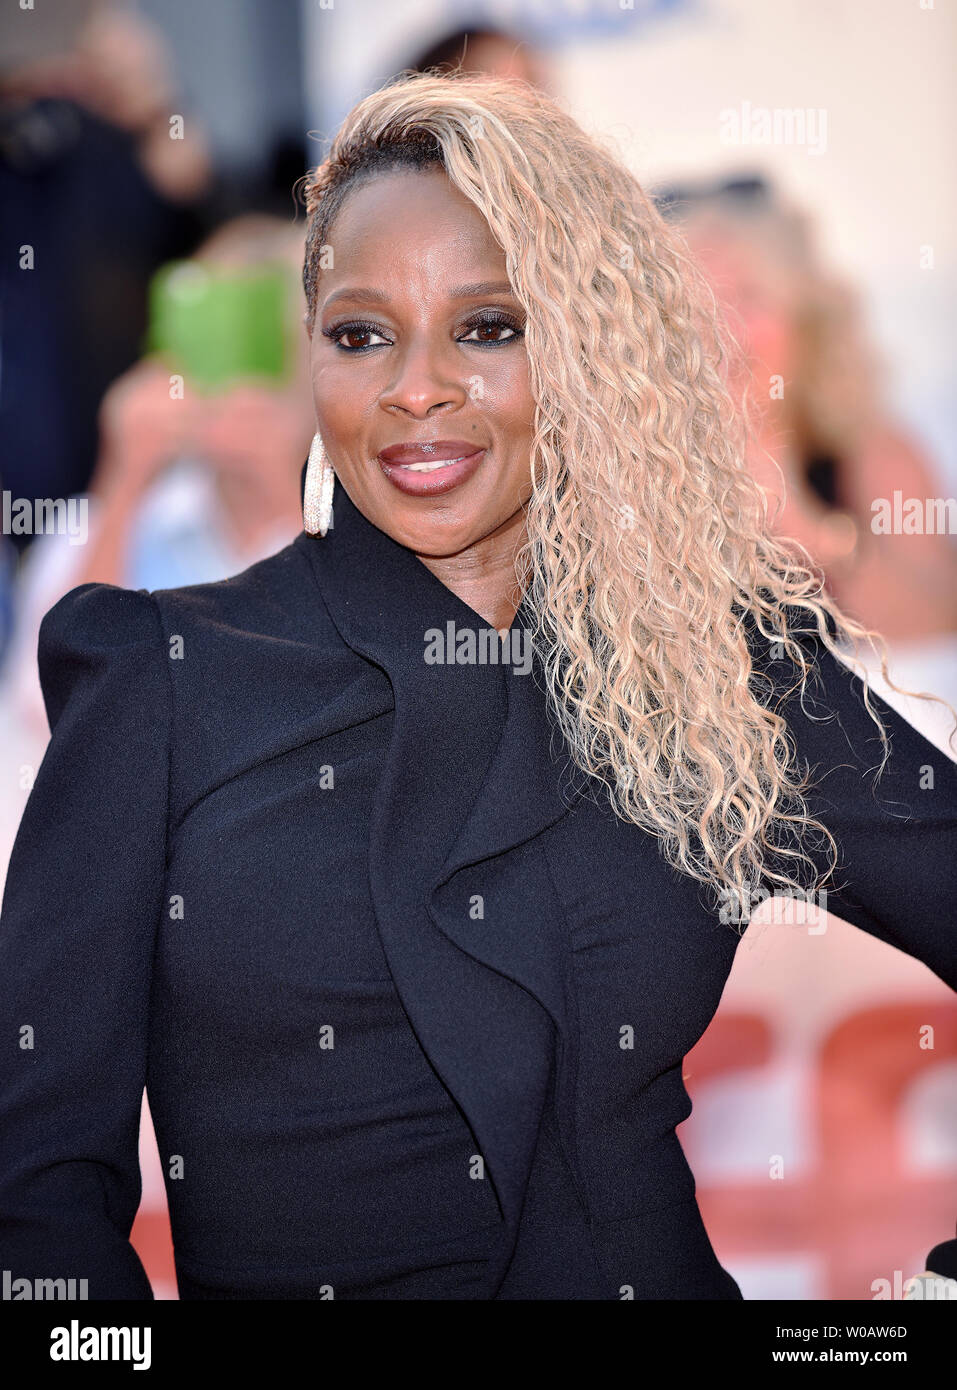 Mary J. Blige attends the Toronto International Film Festival Gala screening of 'Mudbound' at Roy Thomson Hall in Toronto, Canada on September 12, 2017. Photo by Christine Chew/UPI Stock Photo